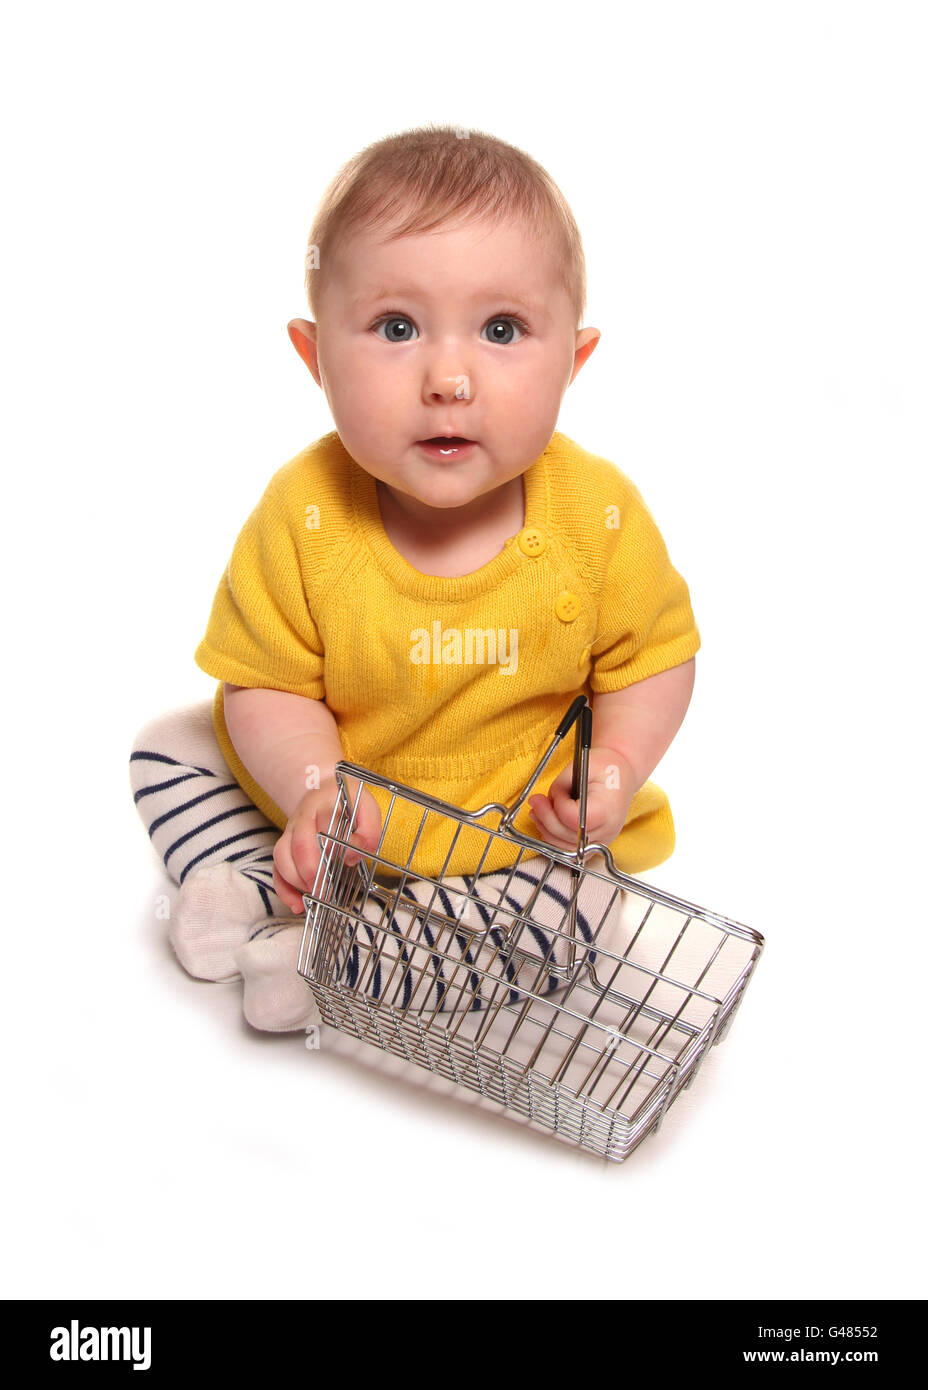 Baby girl with shopping basket cutout - Stock Image